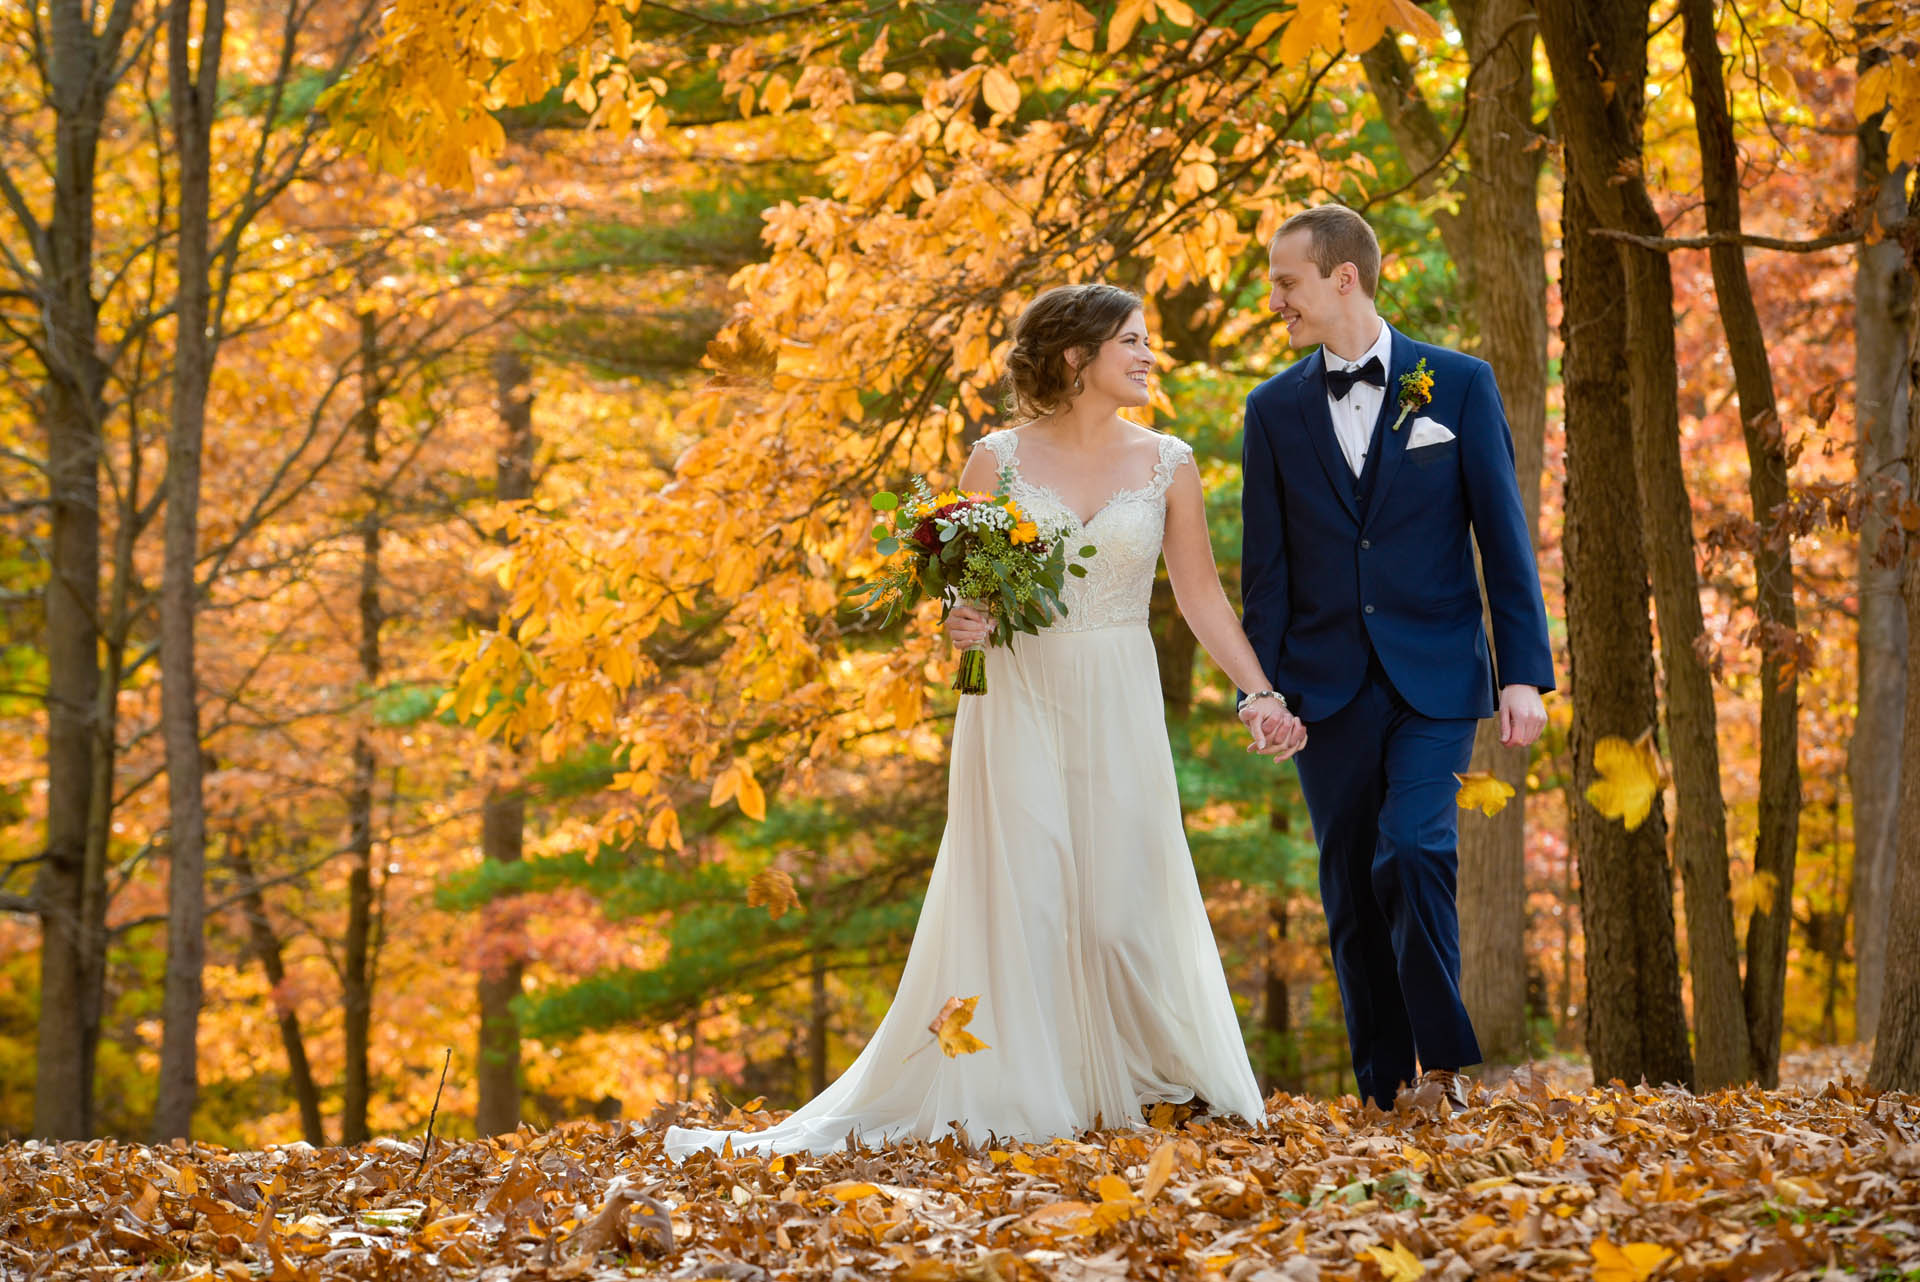 The bride and groom stroll through the leaves in the fall on their wedding day at Waldenwoods Resort in Howell, Michigan.